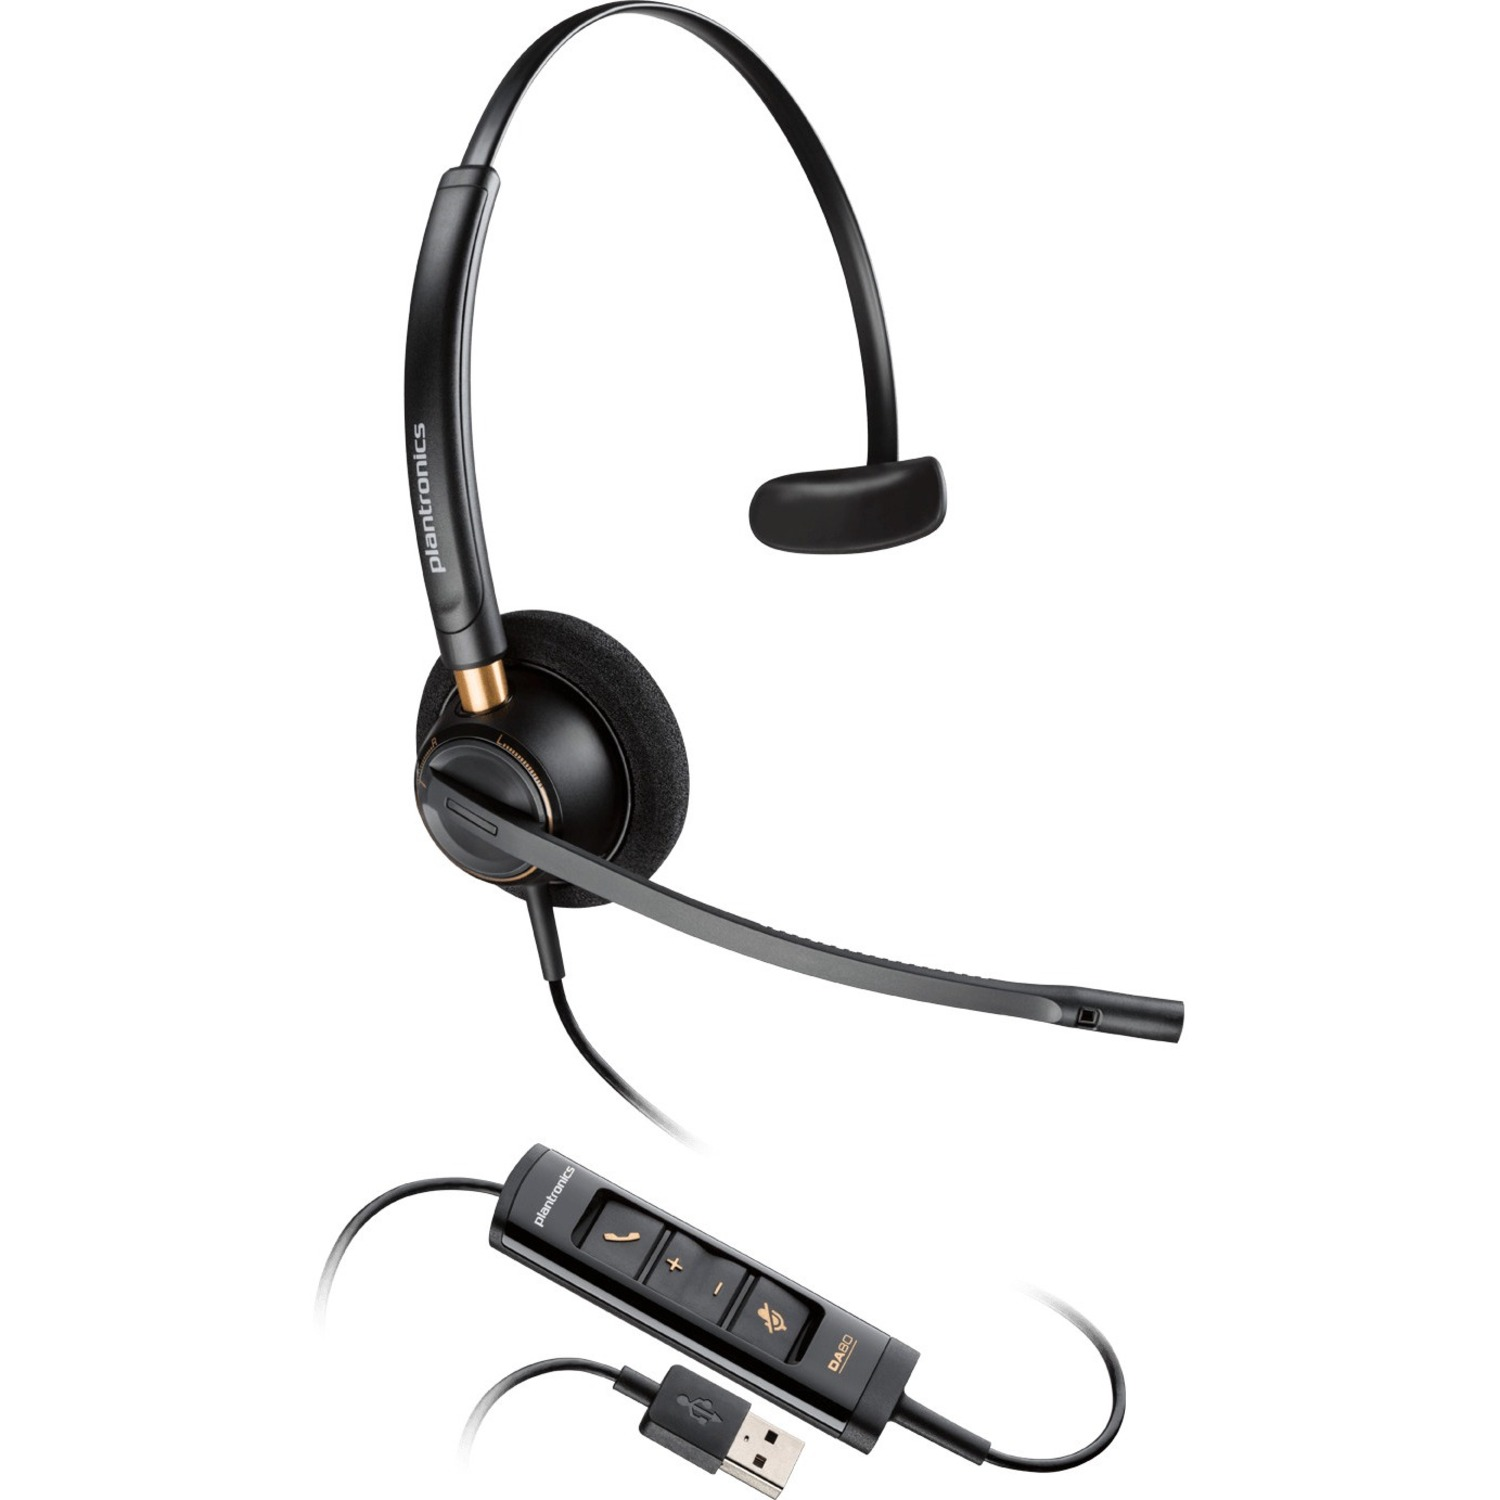 Plantronics Corded Headset with USB Connection_subImage_1